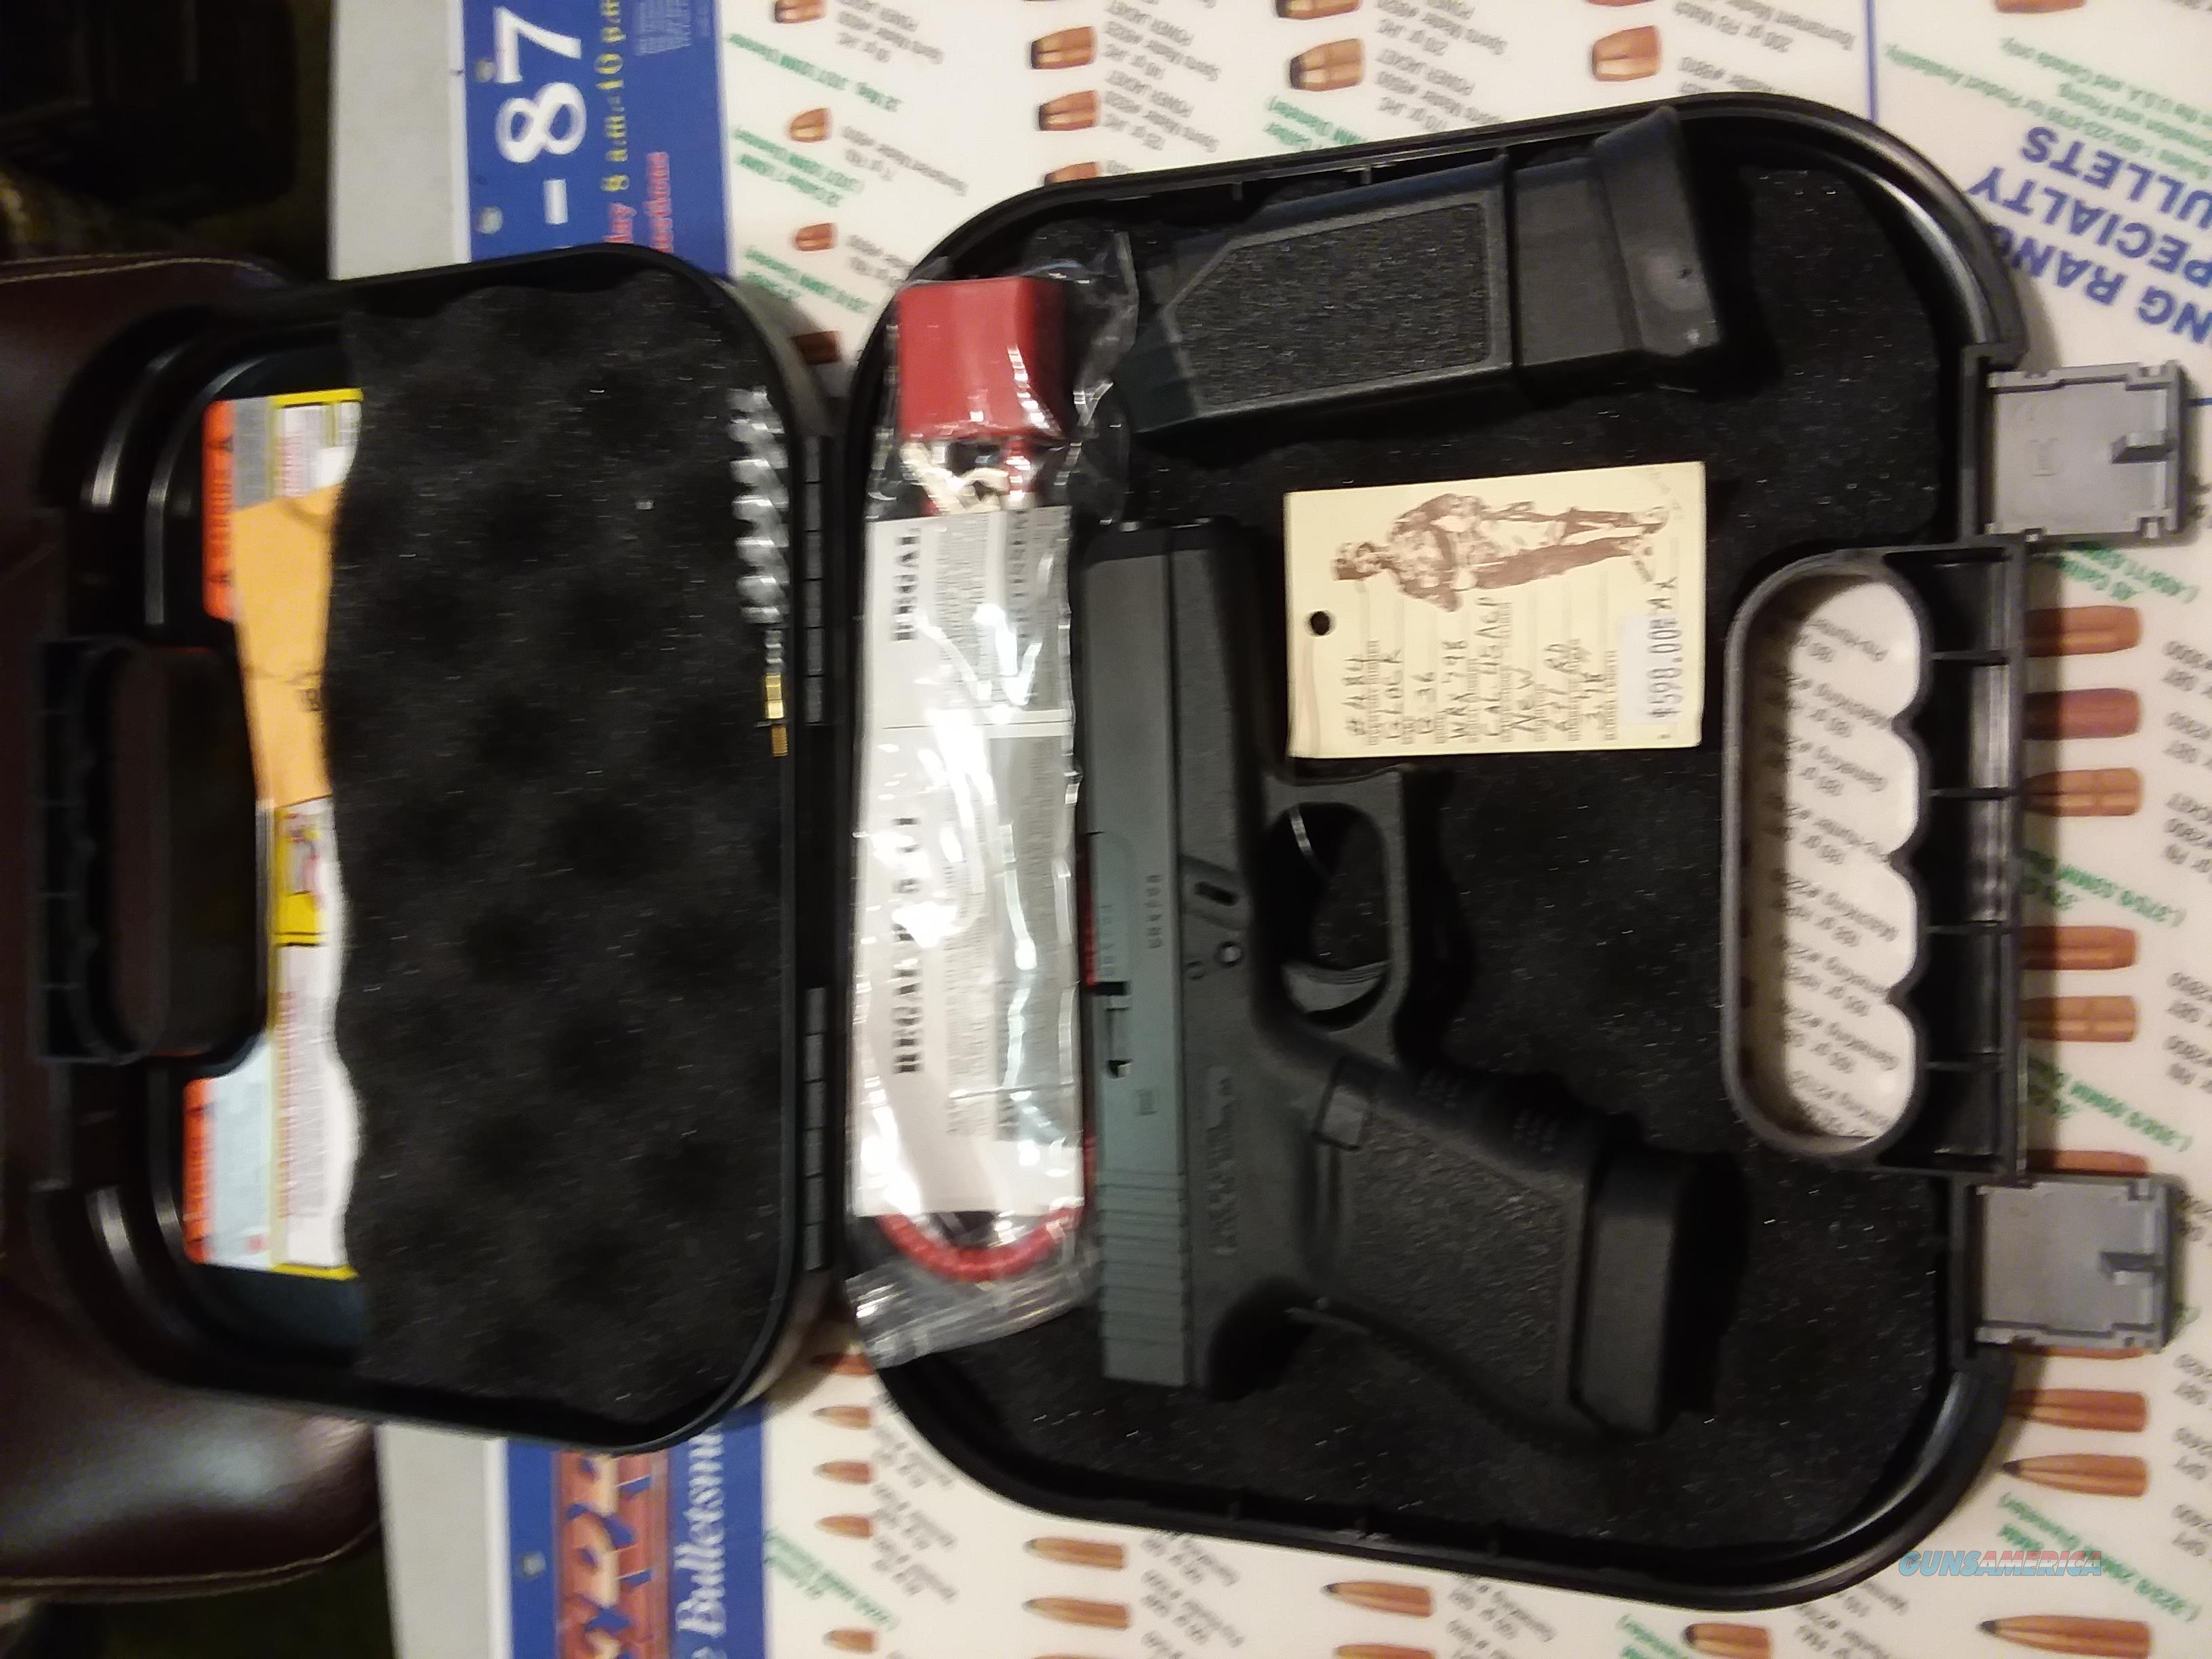 "GLOCK G36 45 ACP NIB 3.750"" Barrel Slime Slide & Single Stack  Guns > Pistols > Glock Pistols > 29/30/36"